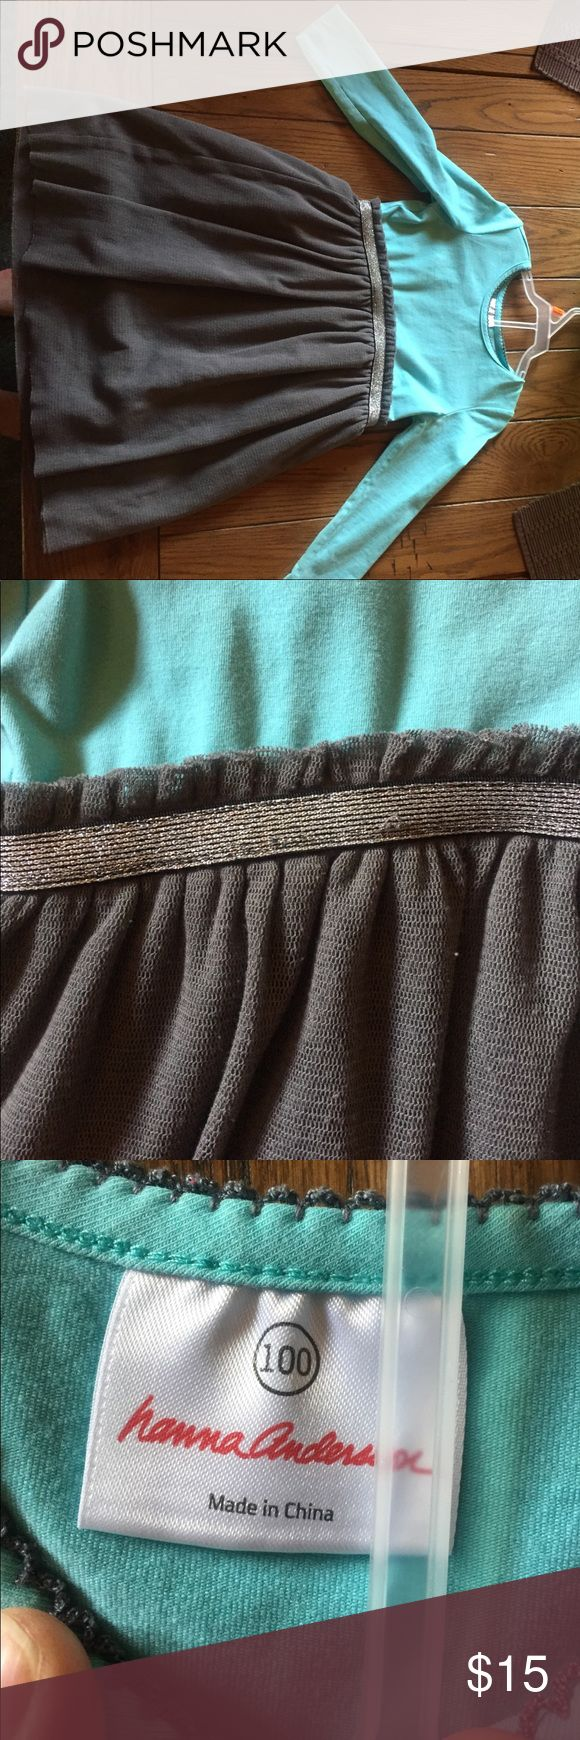 Hanna Anderson aqua blue and grey party dress 🎃🍁 Hanna Andersson blue and grey fall party dress. Cute sparkly belt detailing at waist. Cotton bodice and polyester flared layered skirt. Size 100 fits about a 4t. Comfy, adorable and perfect with boots for fall! 🎃🍁 Hanna Andersson Dresses Casual